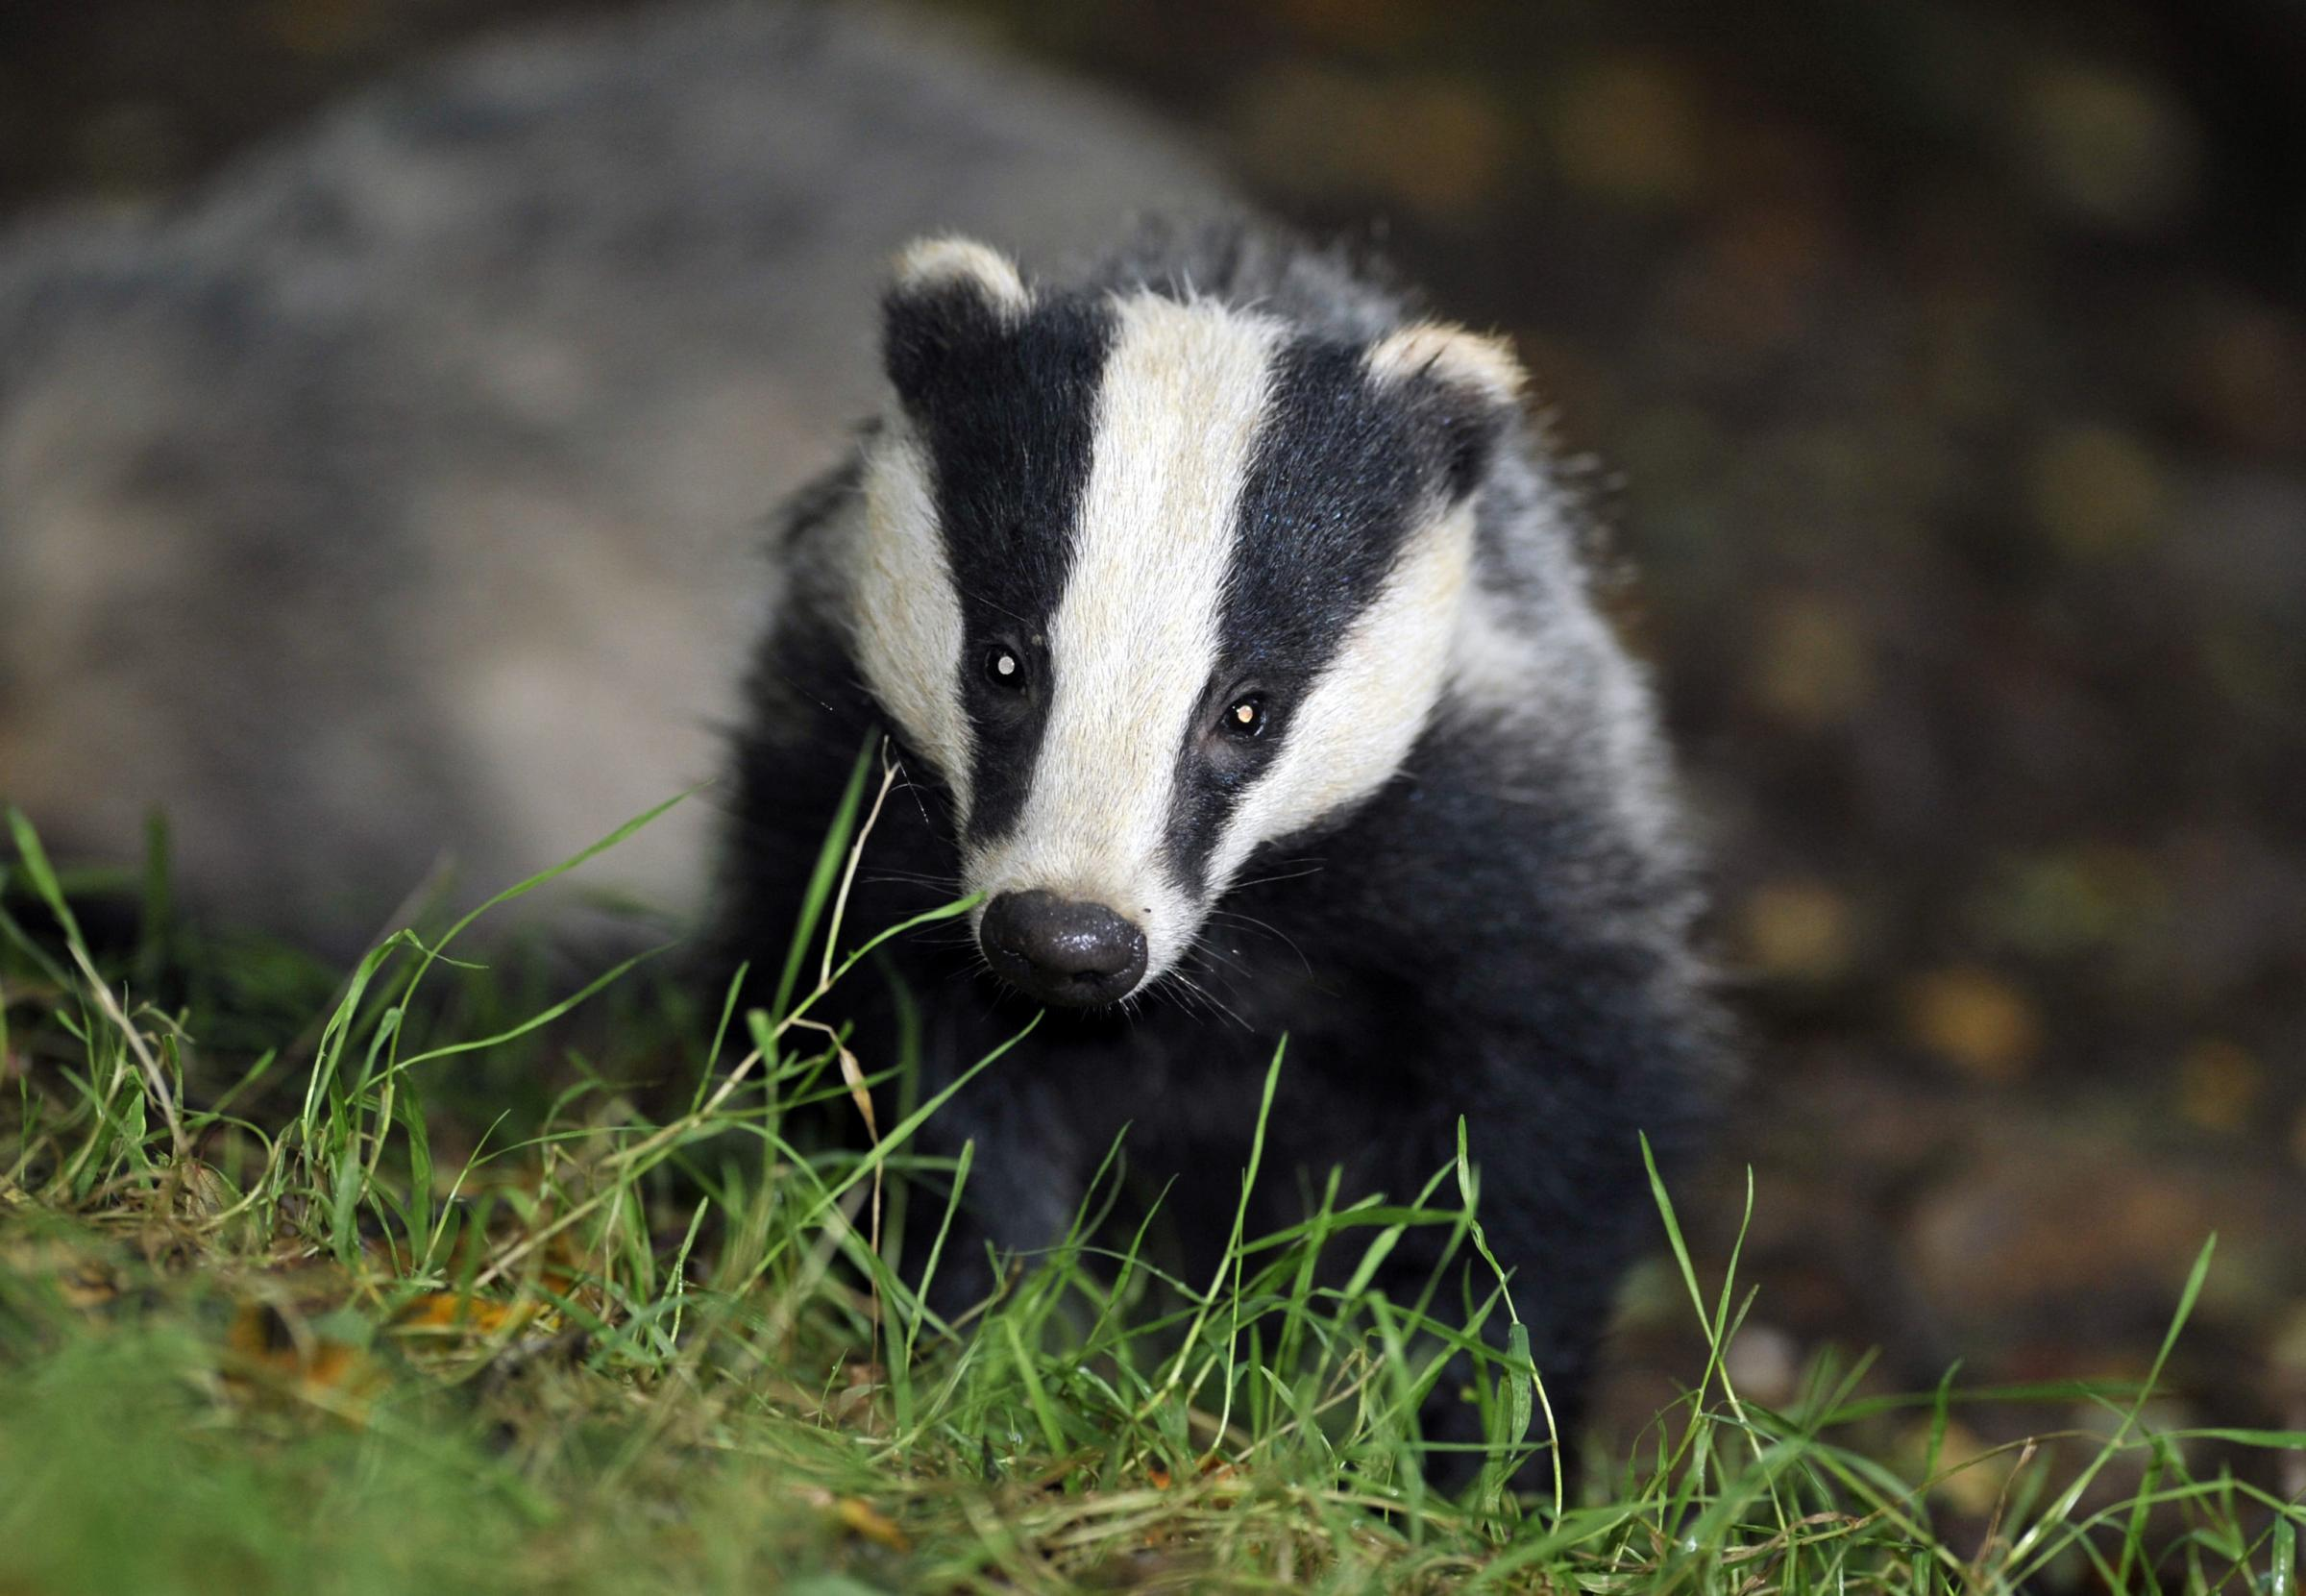 Two years of badger culls in Dorset 'have not reduced level of TB in cattle'